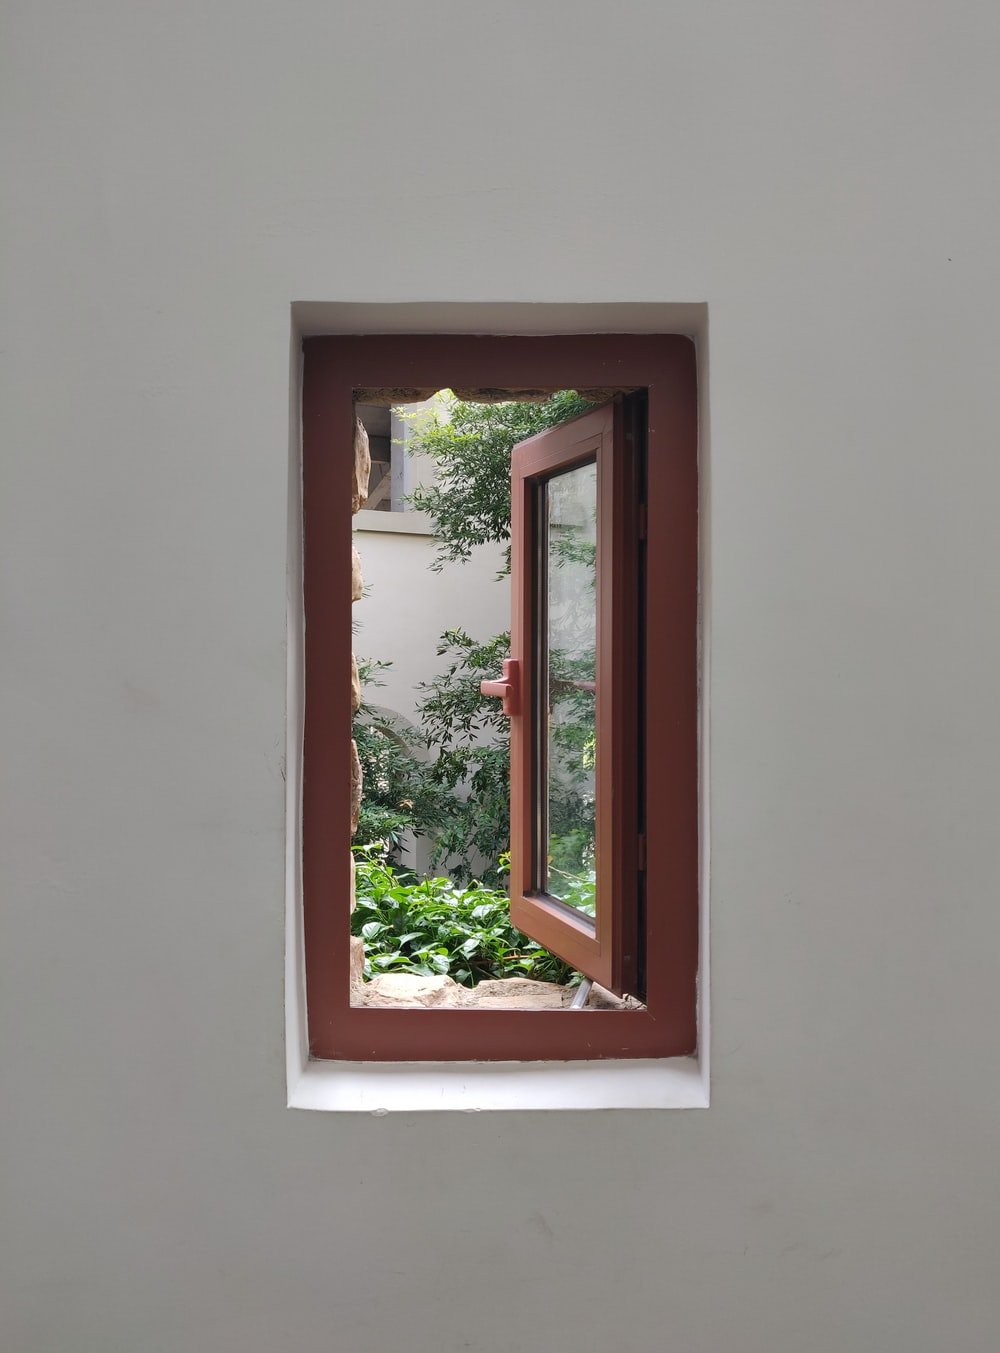 opened brown wooden framed glass window